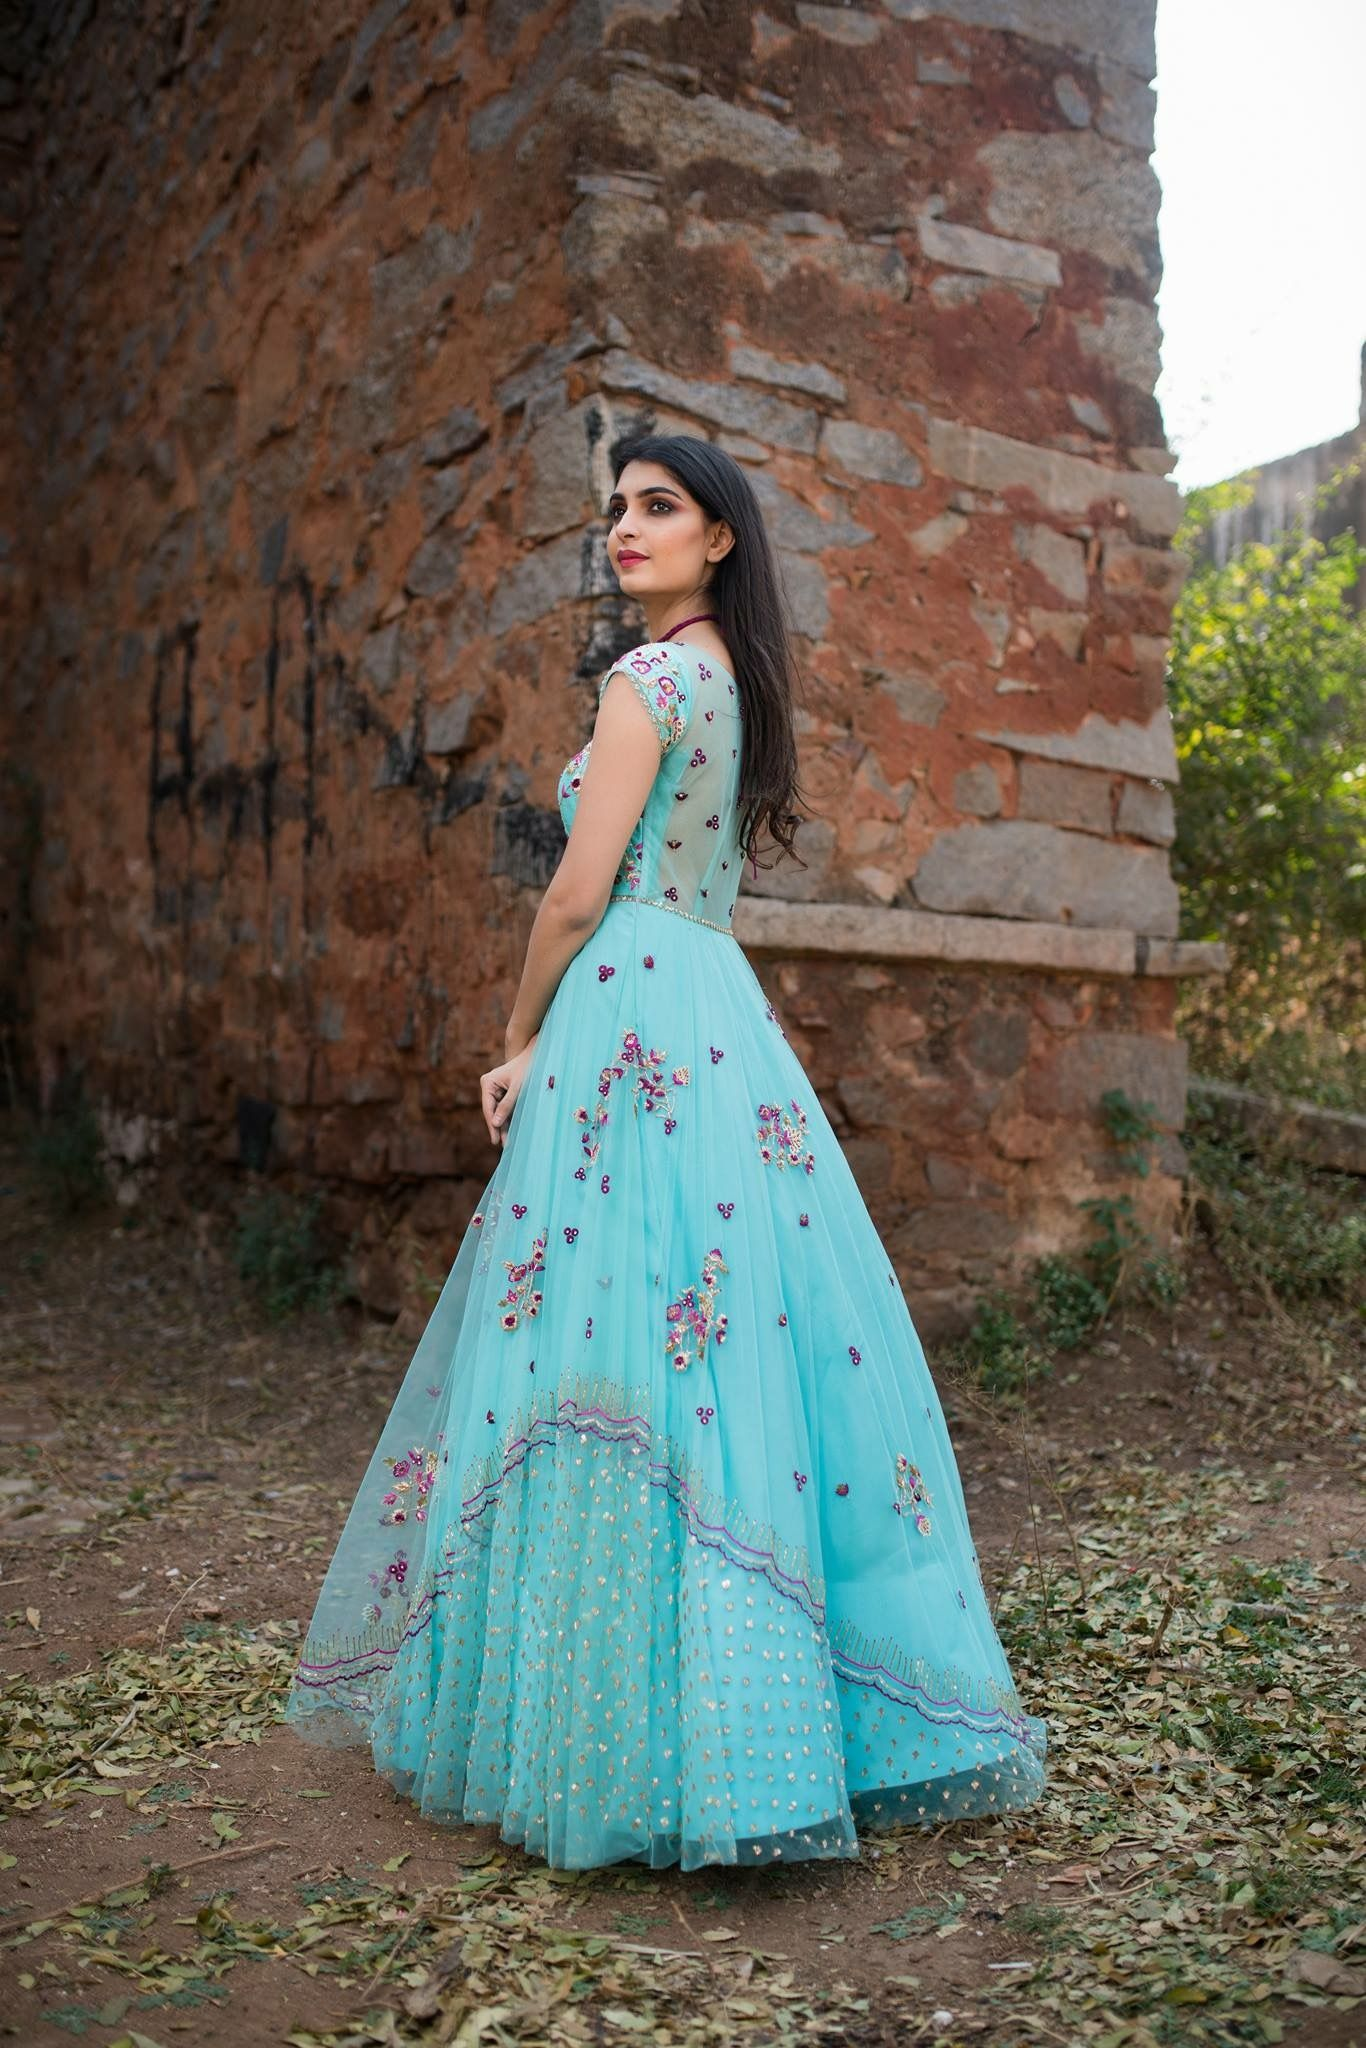 Pin by Ashhh.. on lehngas and gowns | Pinterest | Frocks, Indian ...